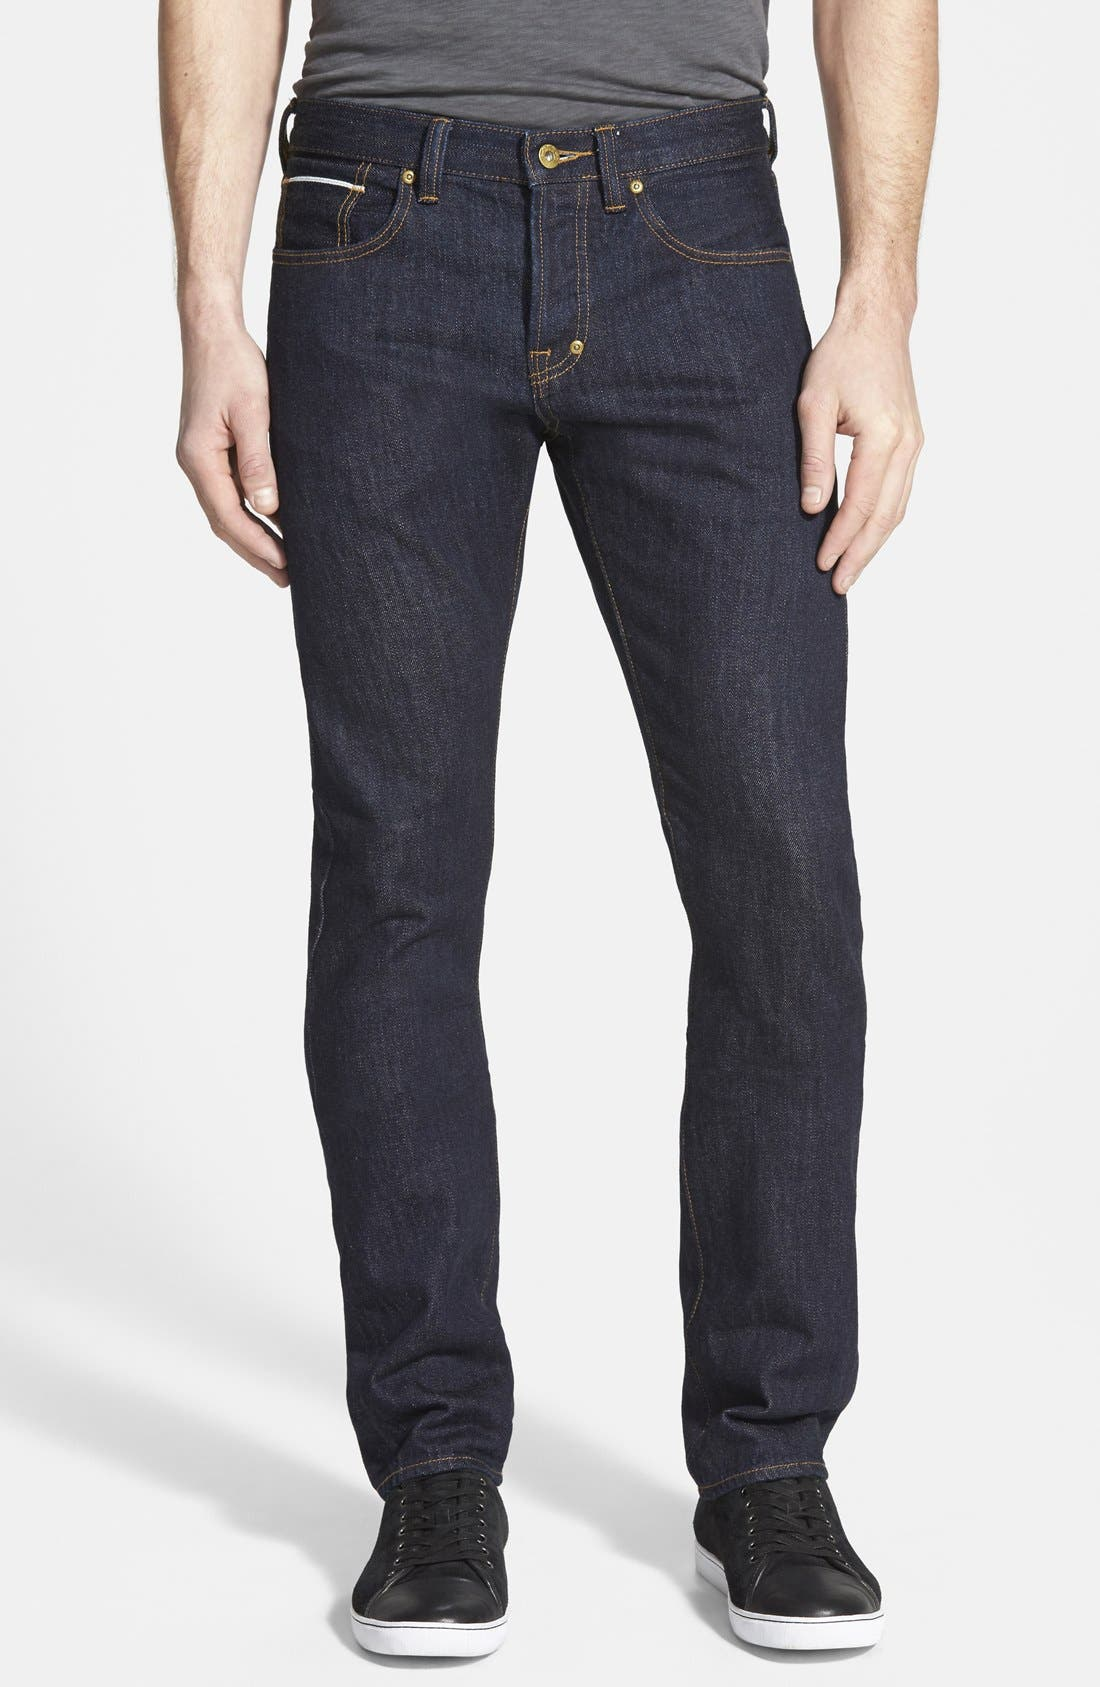 PRPS 'Demon' Slim Straight Leg Selvedge Jeans (Pressed Rinse)